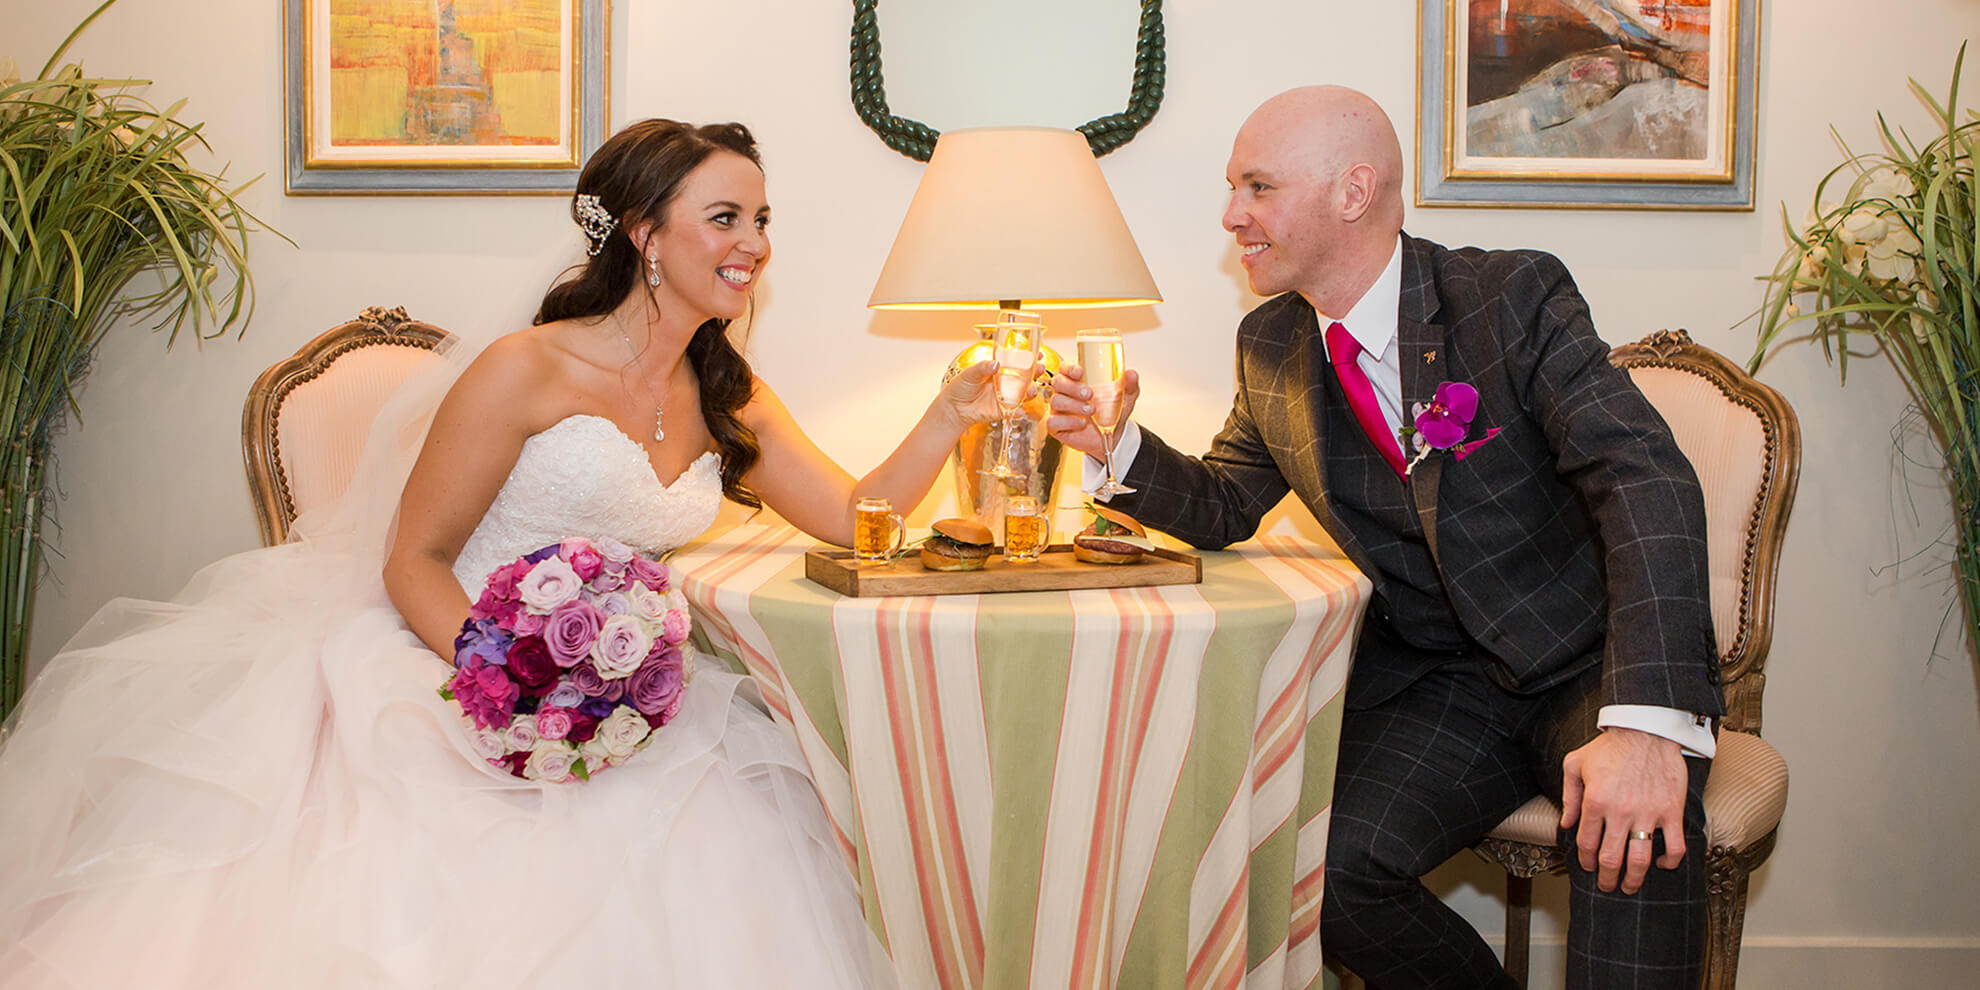 The happy newlyweds raise a glass and toast to their wedding day – autumn wedding